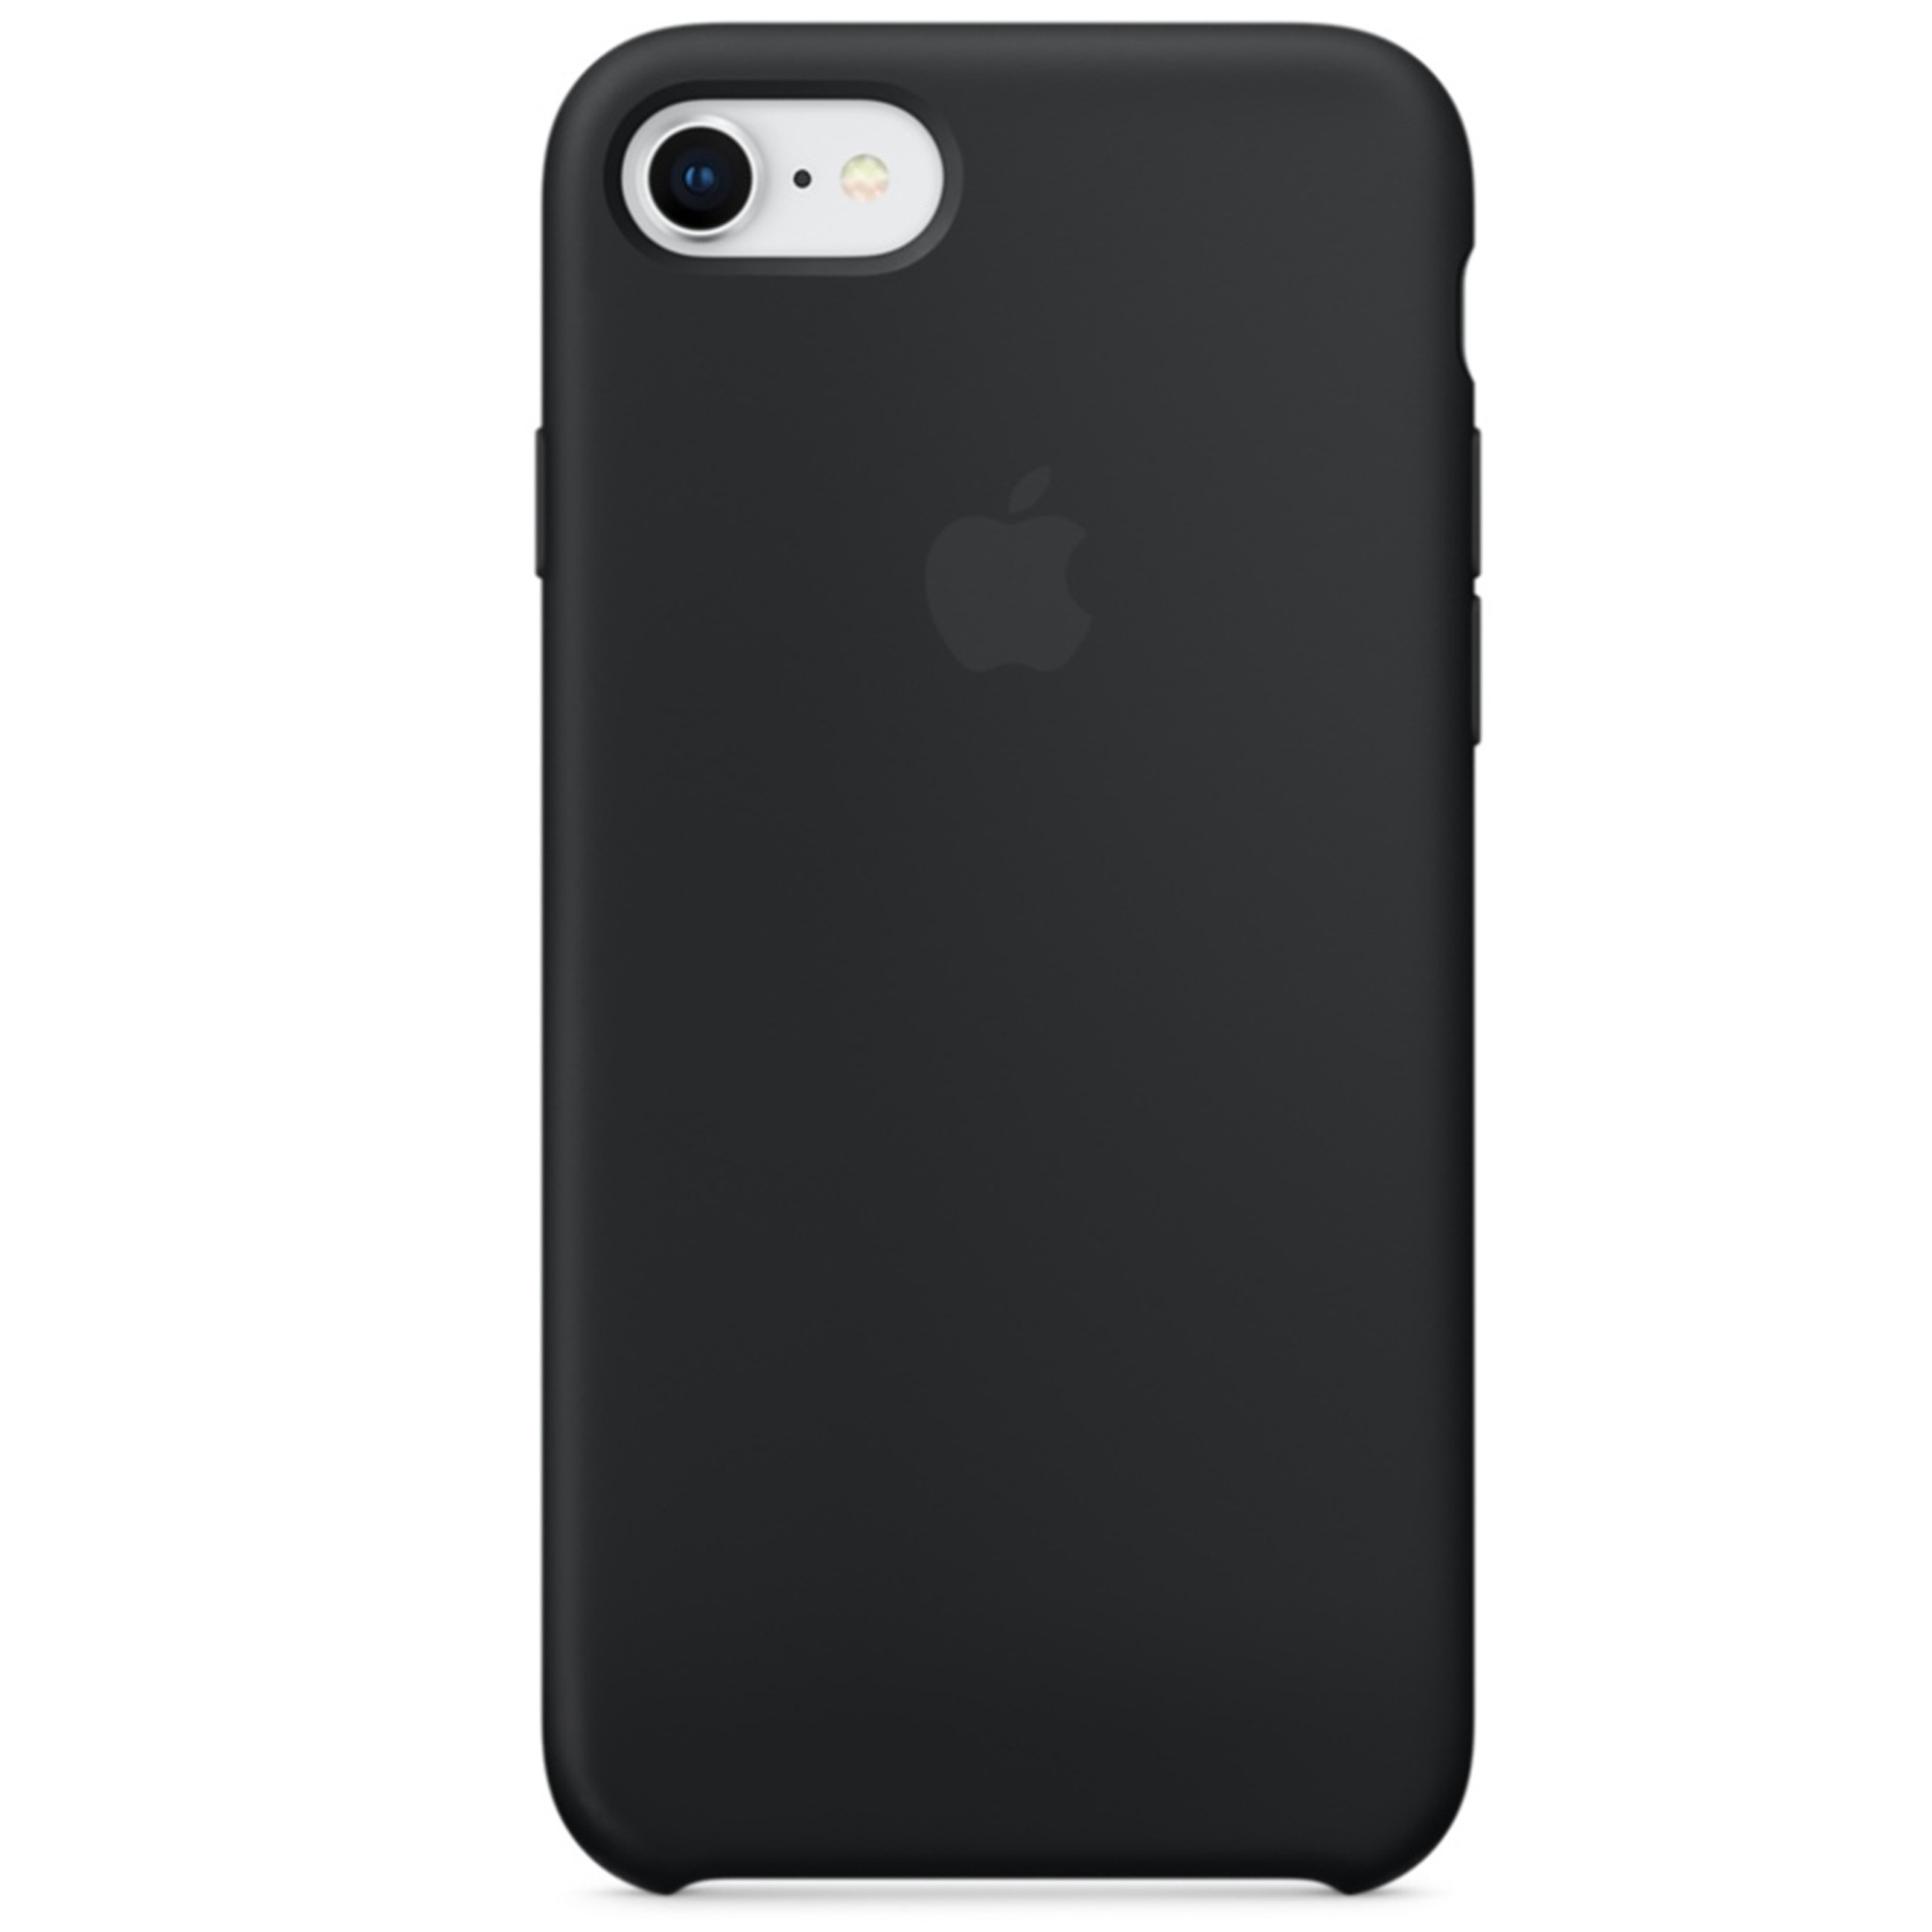 Apple Silicone Backcover iPhone SE (2020) / 8 / 7 - Black